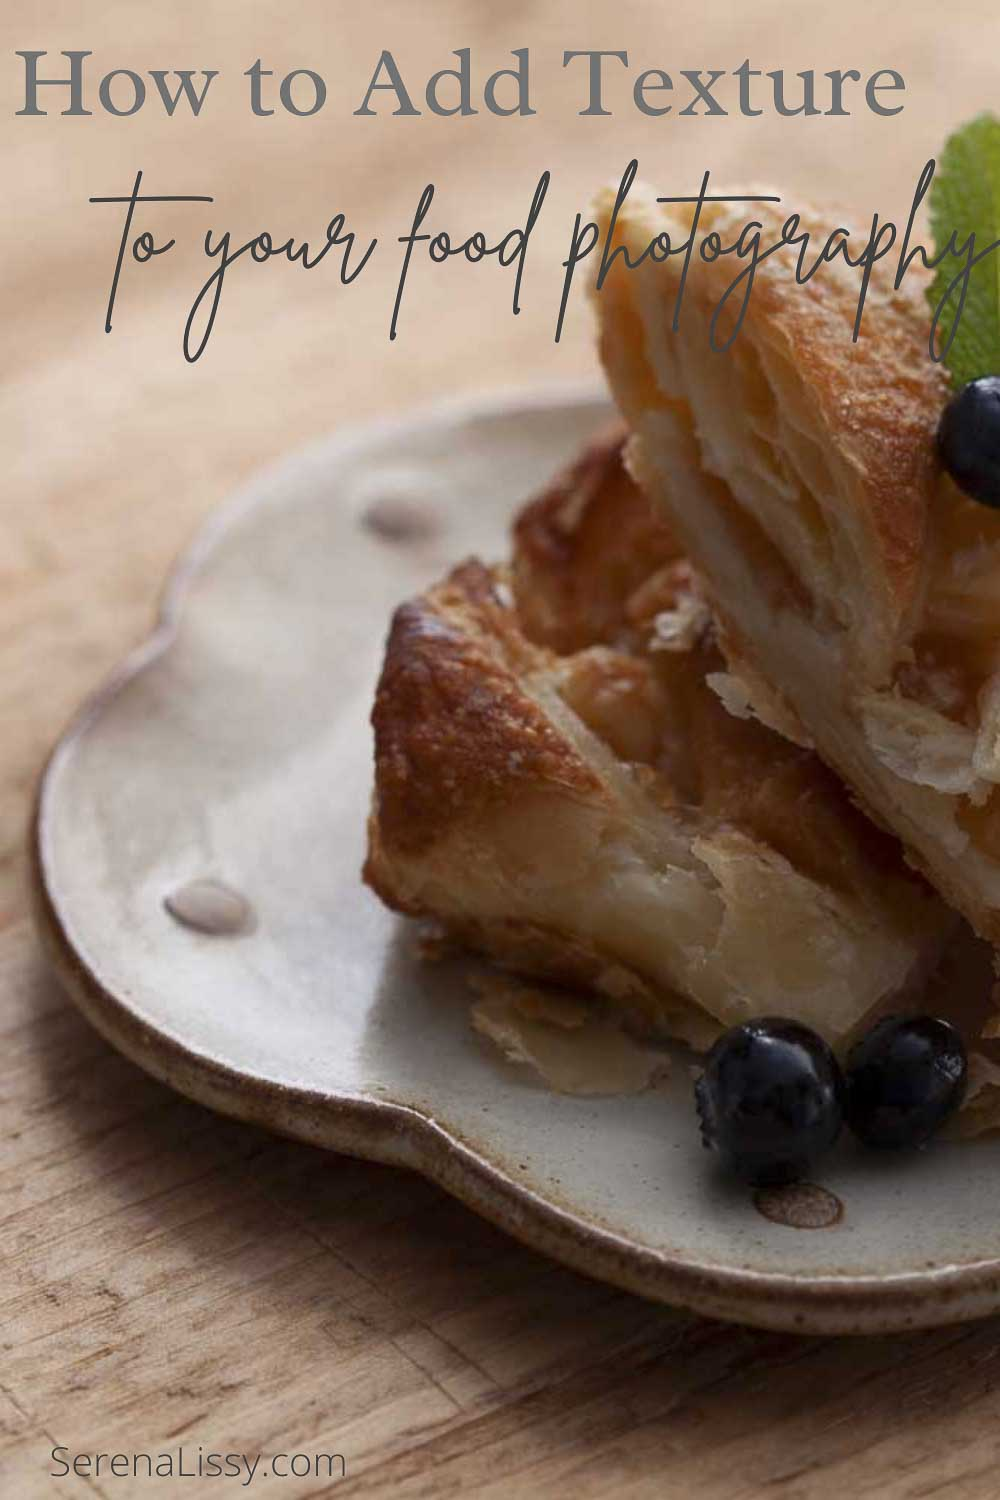 Add Texture To Your Food Photography